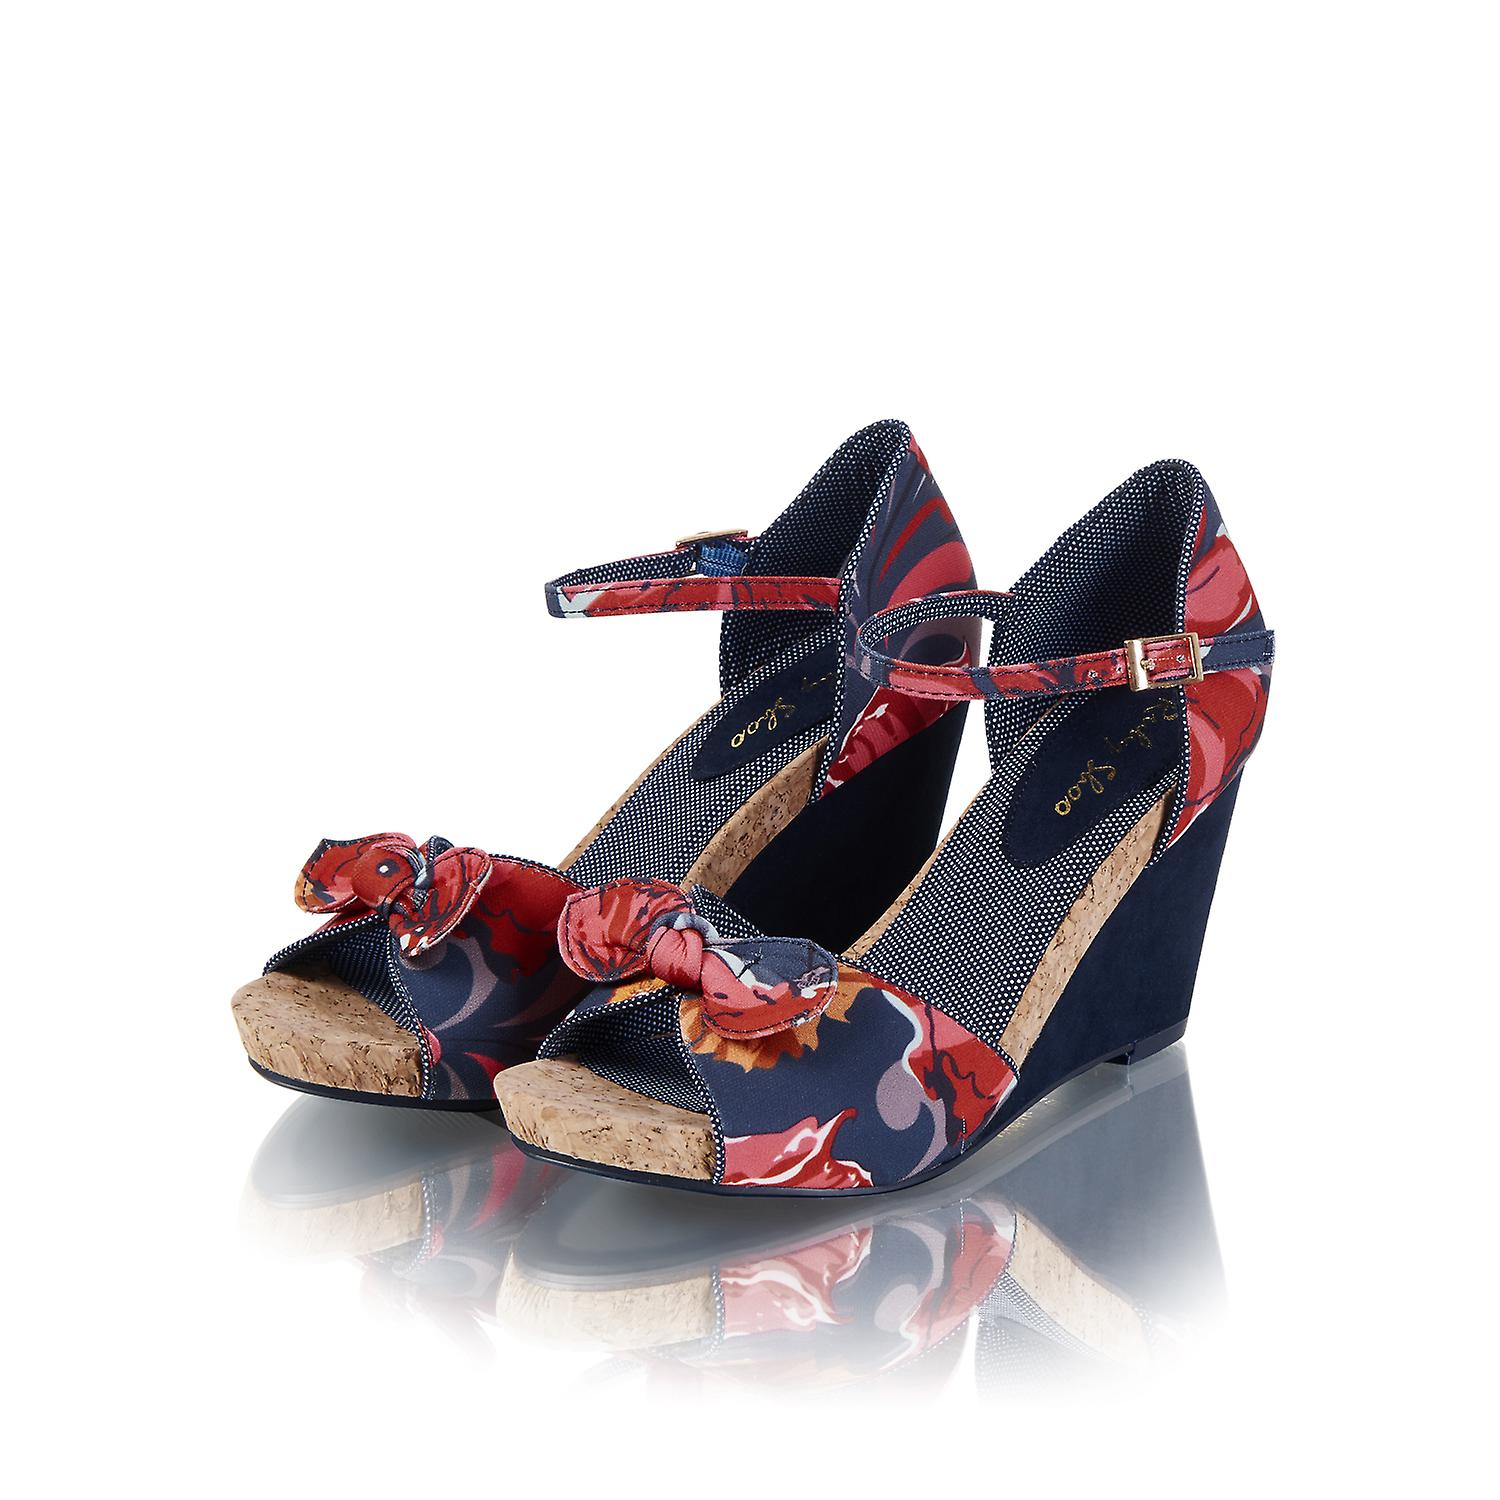 Ruby Shoo Femmes-apos;s Fabric Wedge Molly Sandals Et Matching Santiago Bag